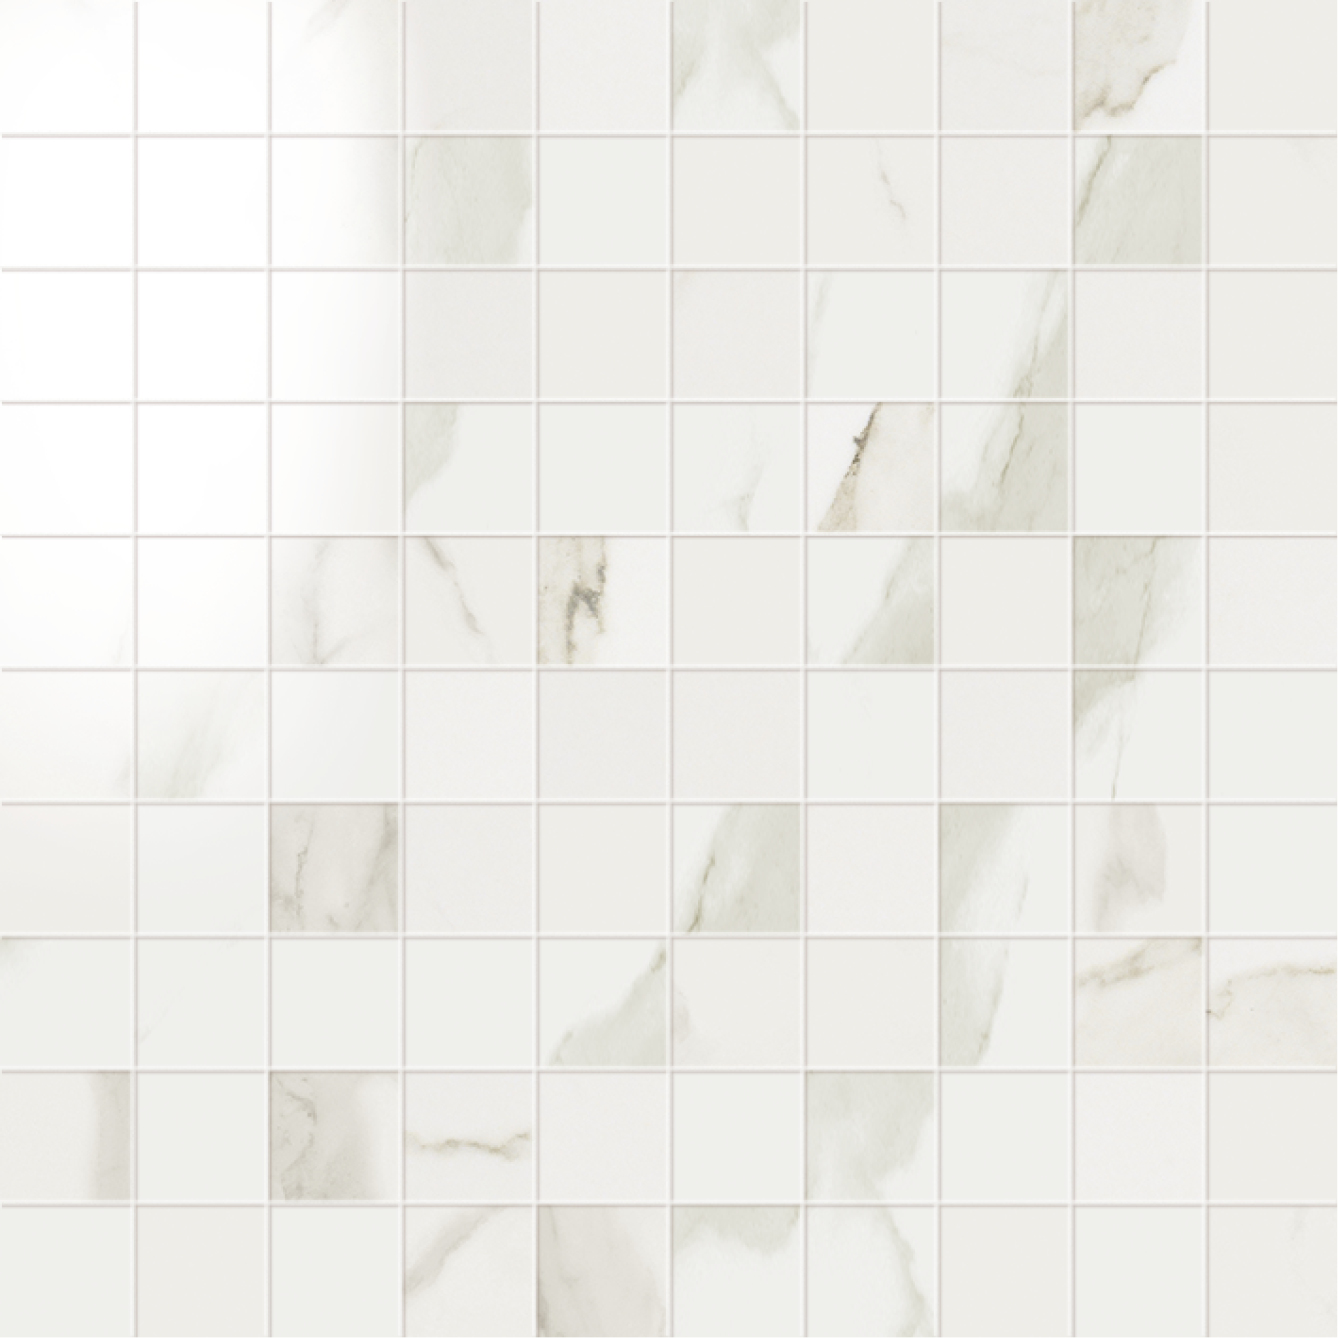 1 x 1 Muse Statuario High Polished porcelain mosaic (SPECIAL ORDER ONLY)